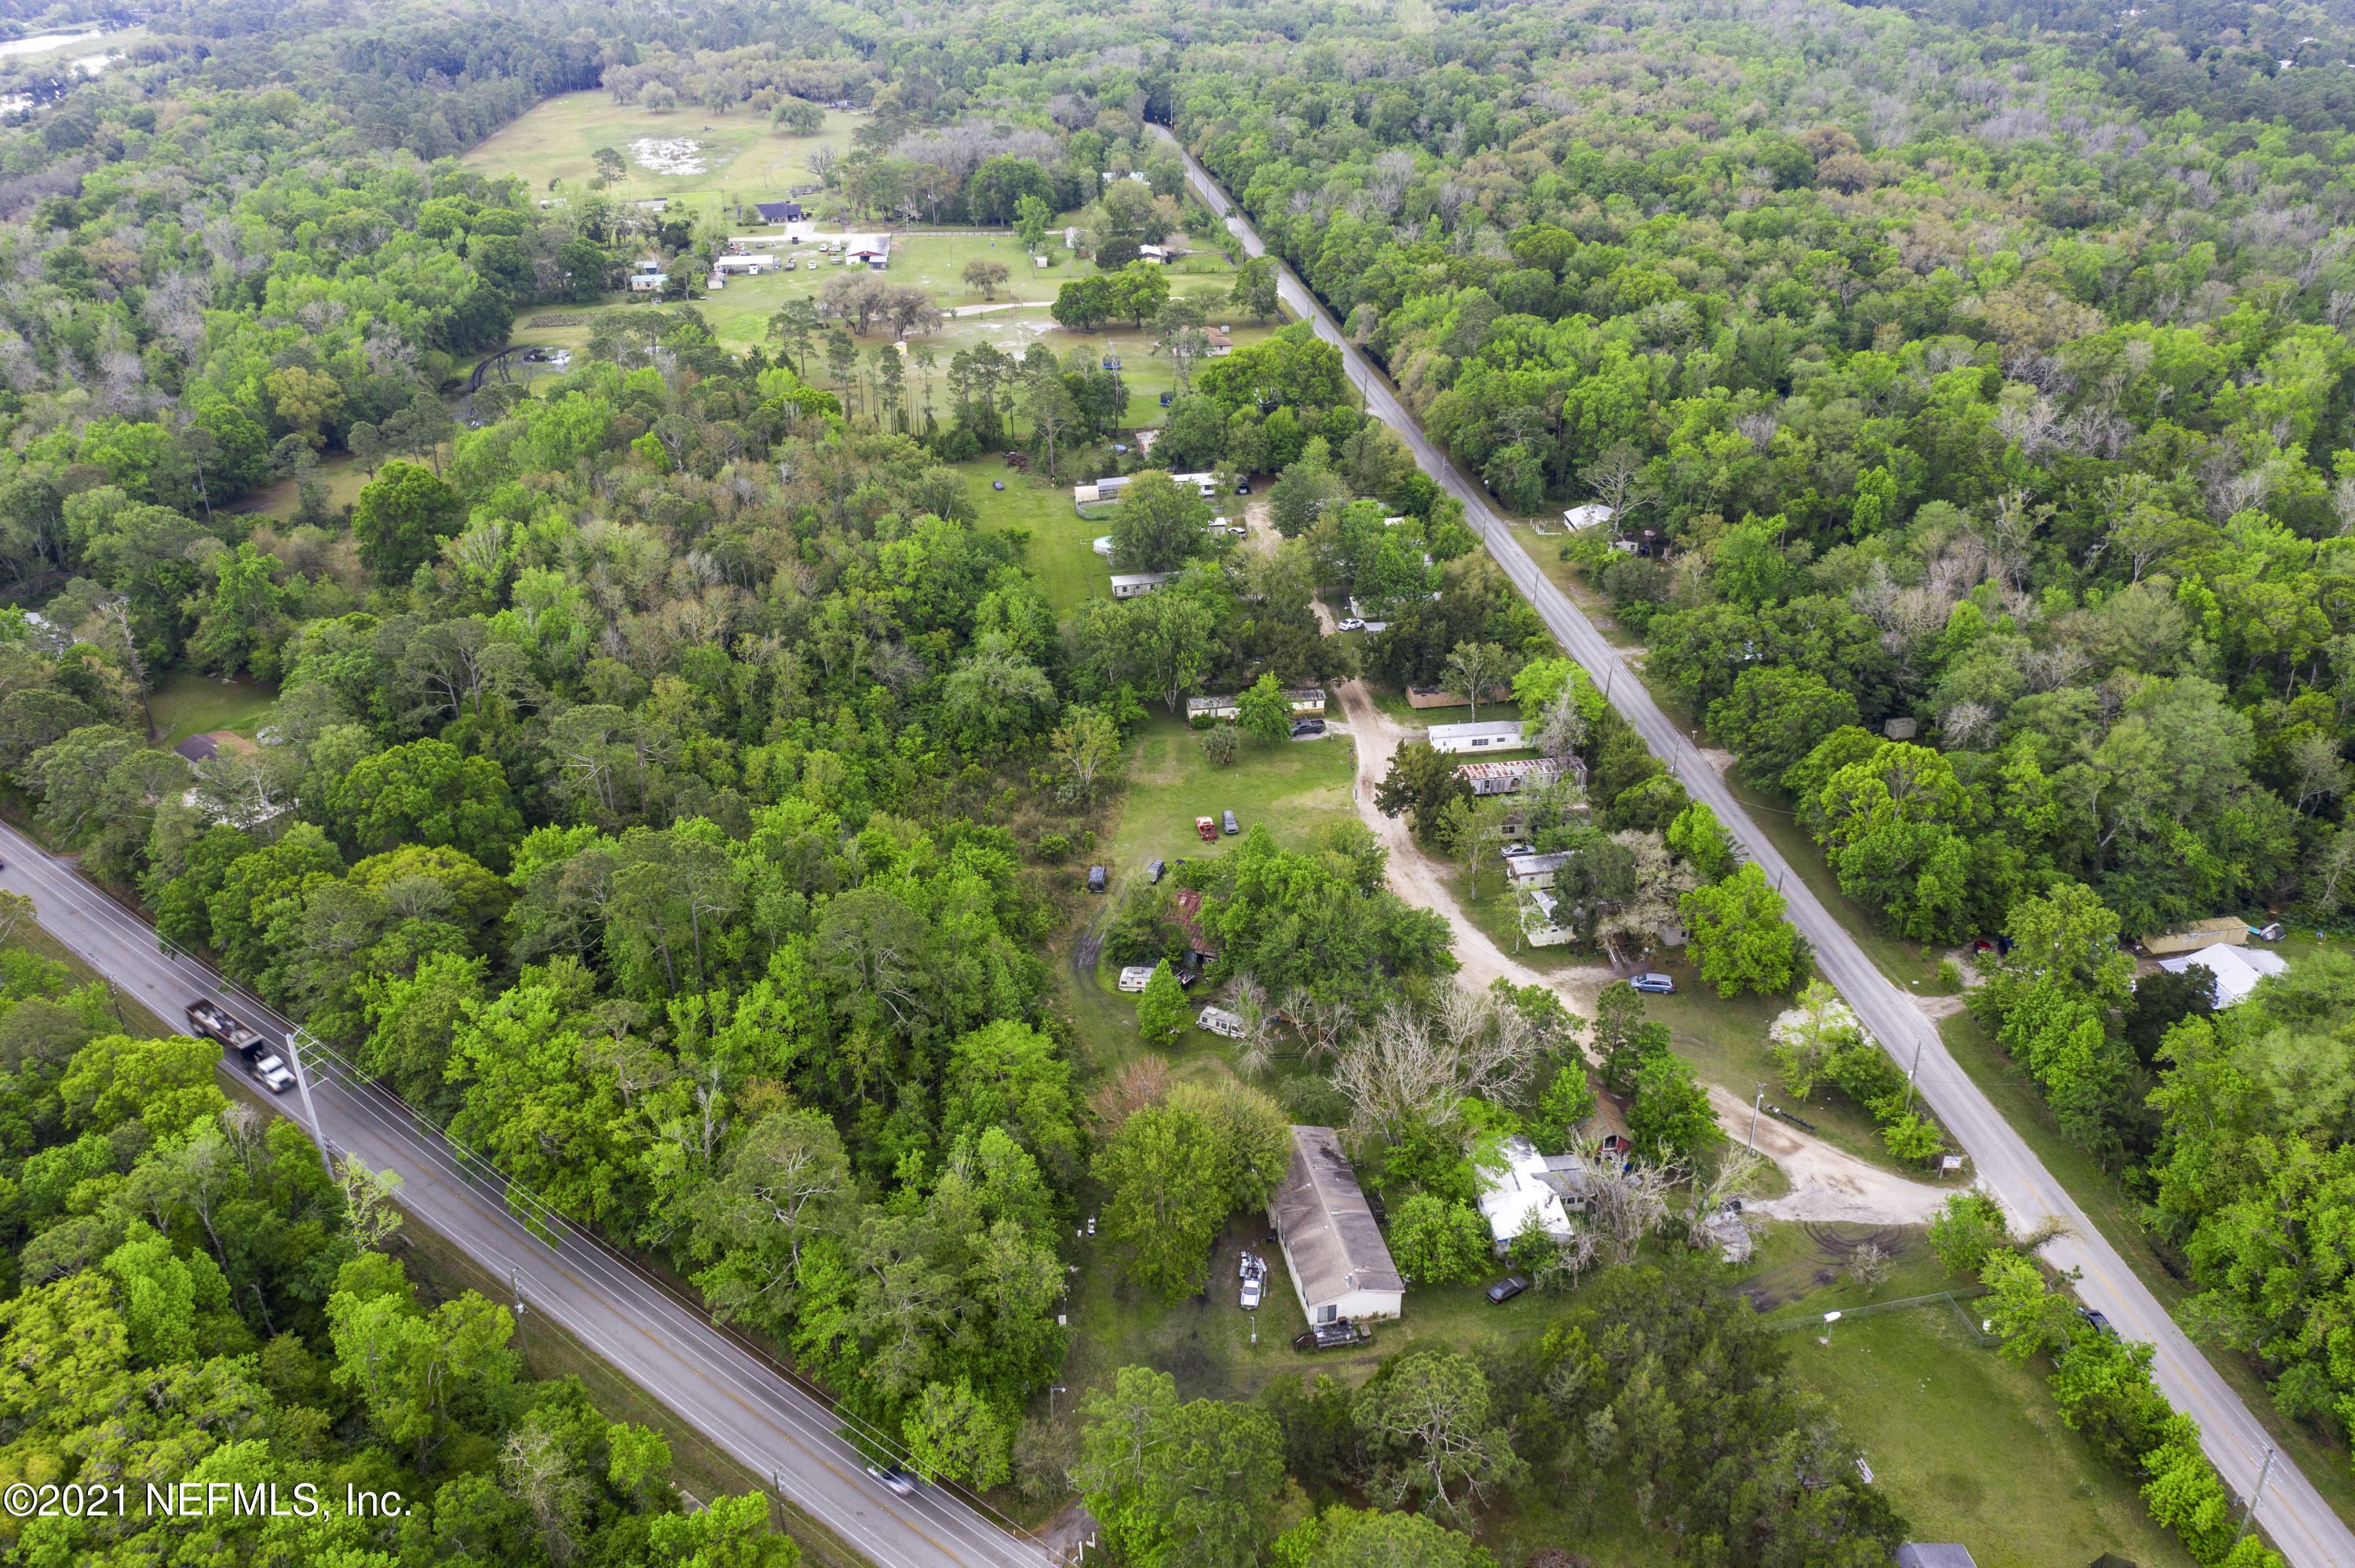 Property is in Opportunity Zone. 6.54 Acre parcel with two mobile home units and a barn located on the parcel. Mobile #1 is a 2007 Fleetwood Doublewide 4/2 (30x80) at 100k value. Mobile #2 is a 1980 Smaller 4/2 Doublewide(28x55) needs 25k work. Barn is 30x20. Well and septic on the property. Could be good for a neighborhood development with access to Four Mile and Deer Run. Presented Separately or in conjunction with 2510 Deer Run Rd, a 4 acre 23 unit mobile home park.Inquire for more information.